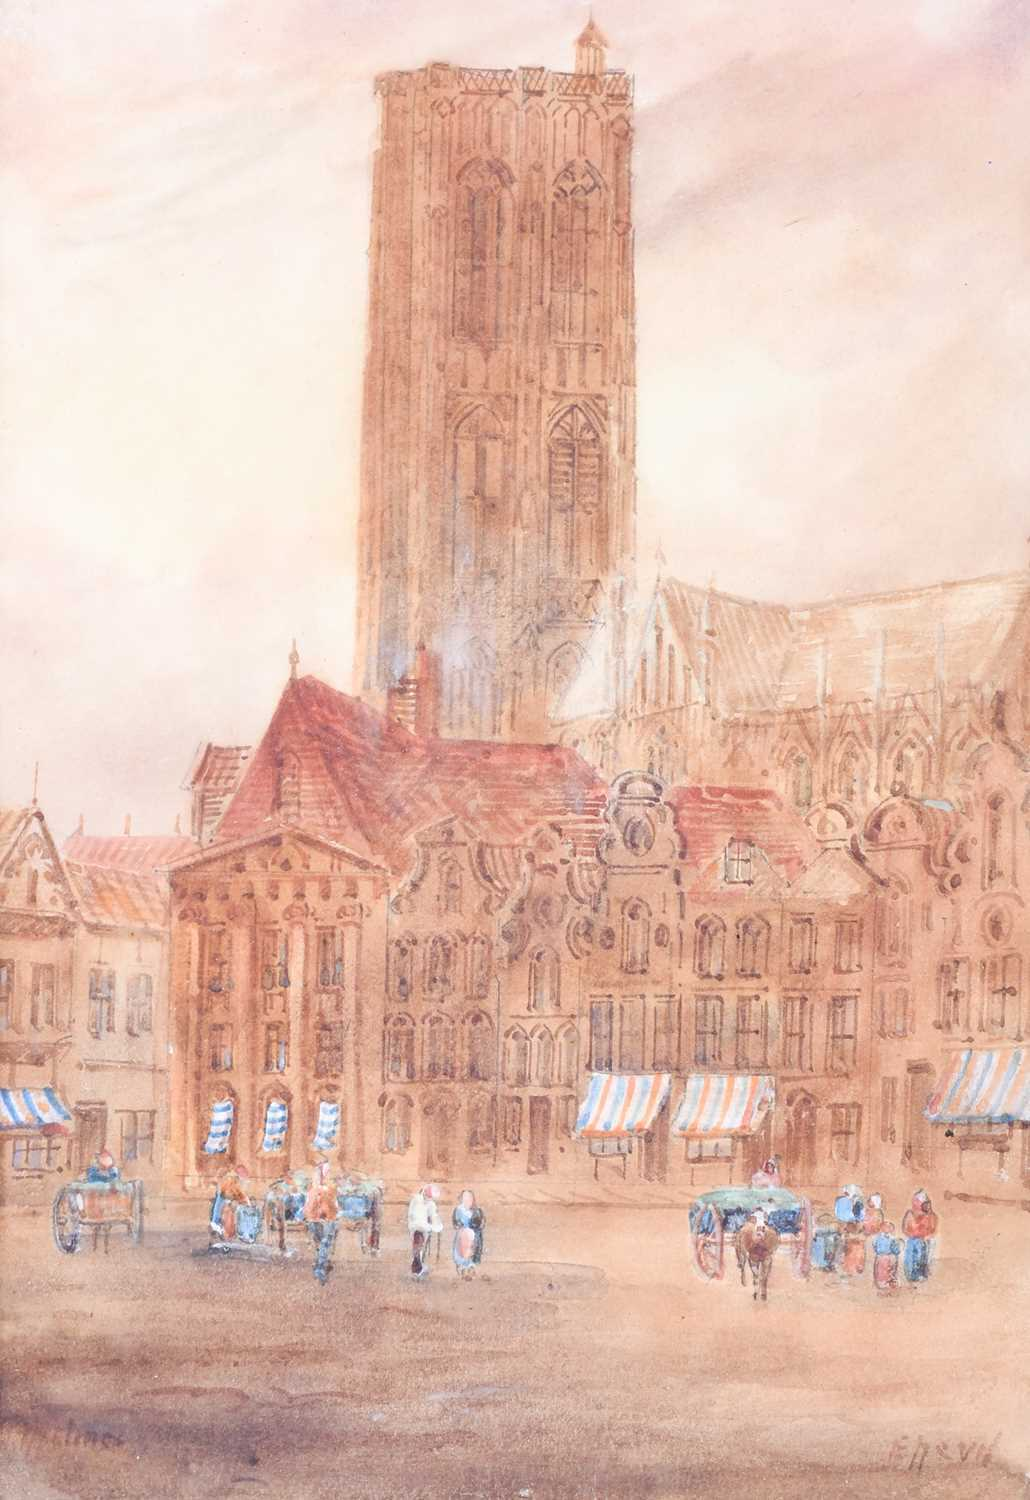 Edward Nevil (British, fl: 1880 - 1900) 'Ypres' & 'Malines', signed, watercolour, a pair, 27 x 19cm - Image 3 of 7